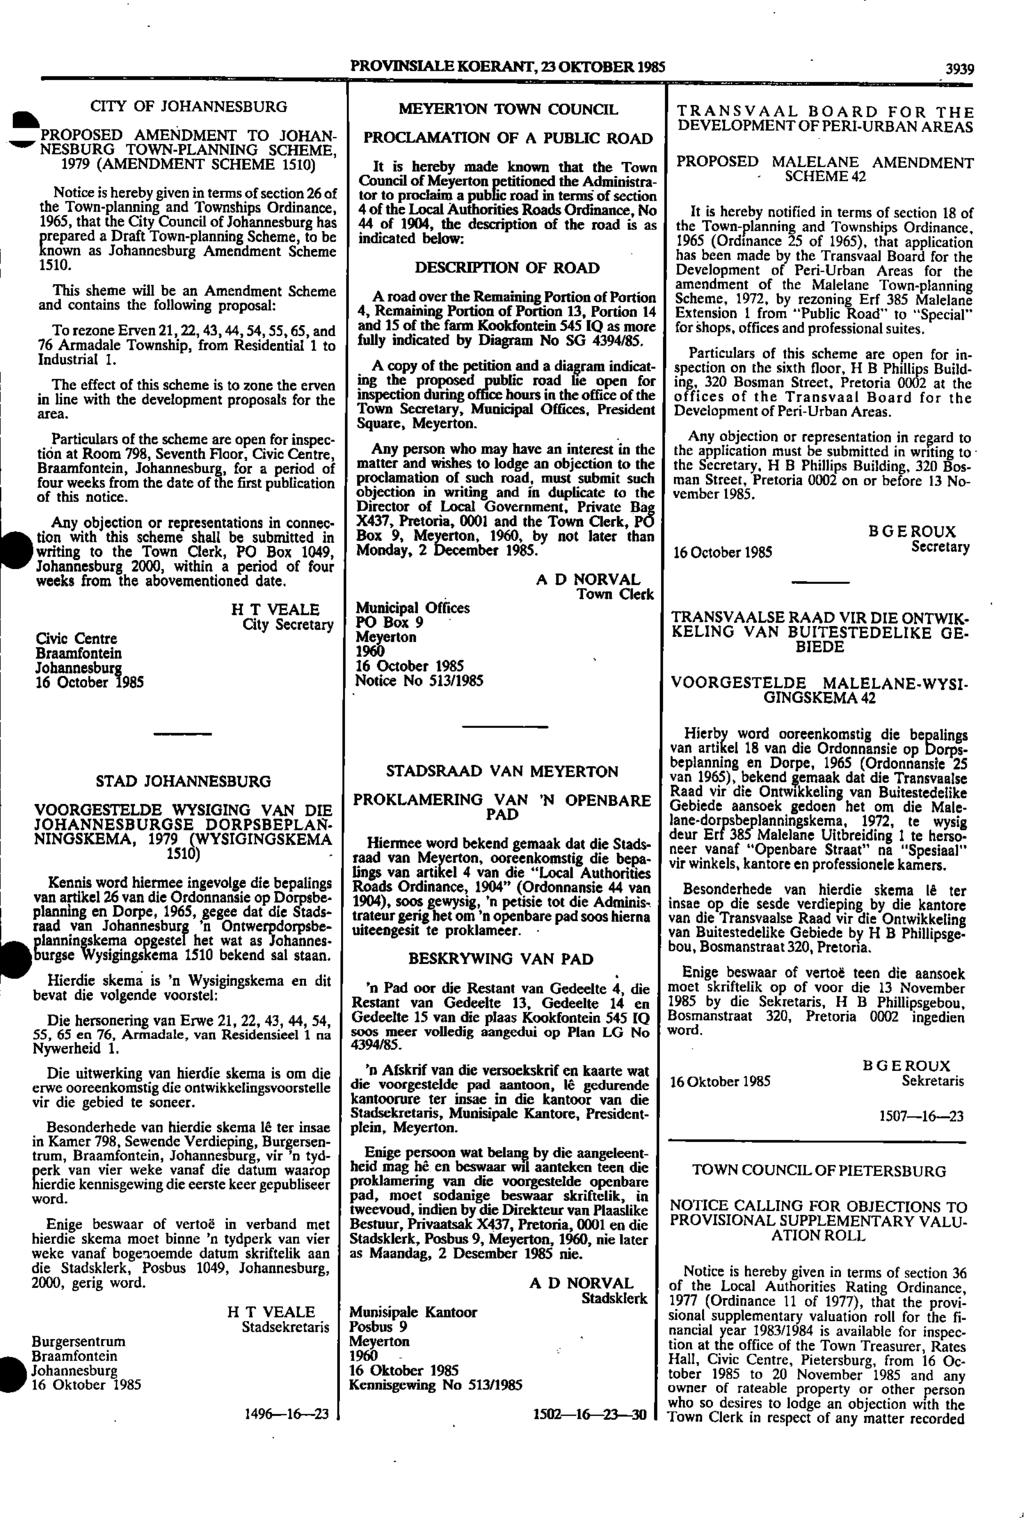 PROVINSIALE KOERANT, 23 OKTOBER 1985 3939 CITY OF JOHANNESBURG MEYERTON TOWN COUNCIL TRANSVAAL BOARD FOR THE It DEVELOPMENT OF PROPOSED PERIURBAN AREAS AMENDMENT TO JOHAN PROCLAMATION OF A PUBLIC